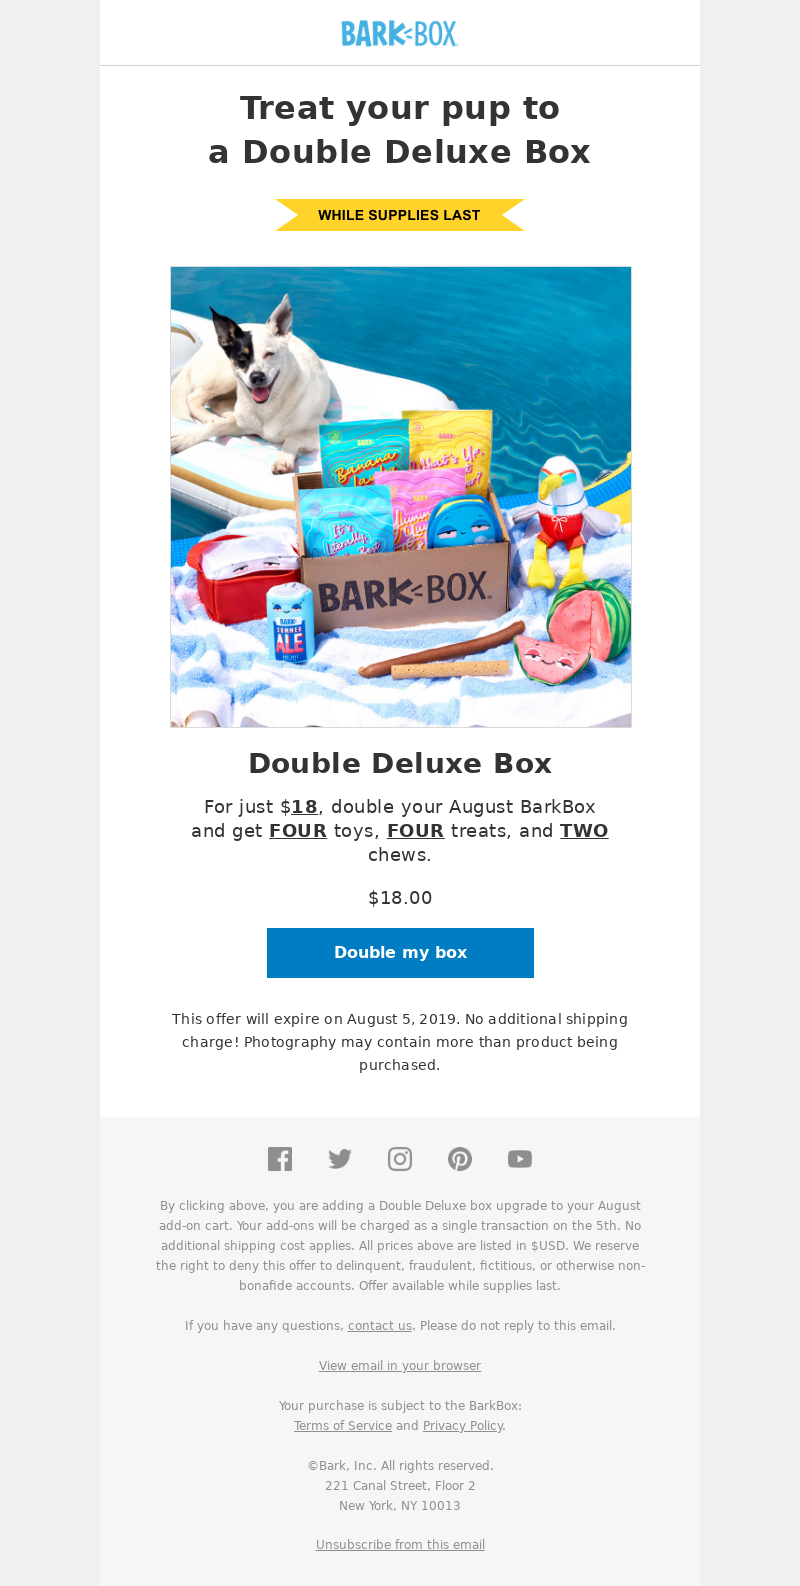 BarkBox Treat your pup to a Double Deluxe Box Double Deluxe Box For just $1